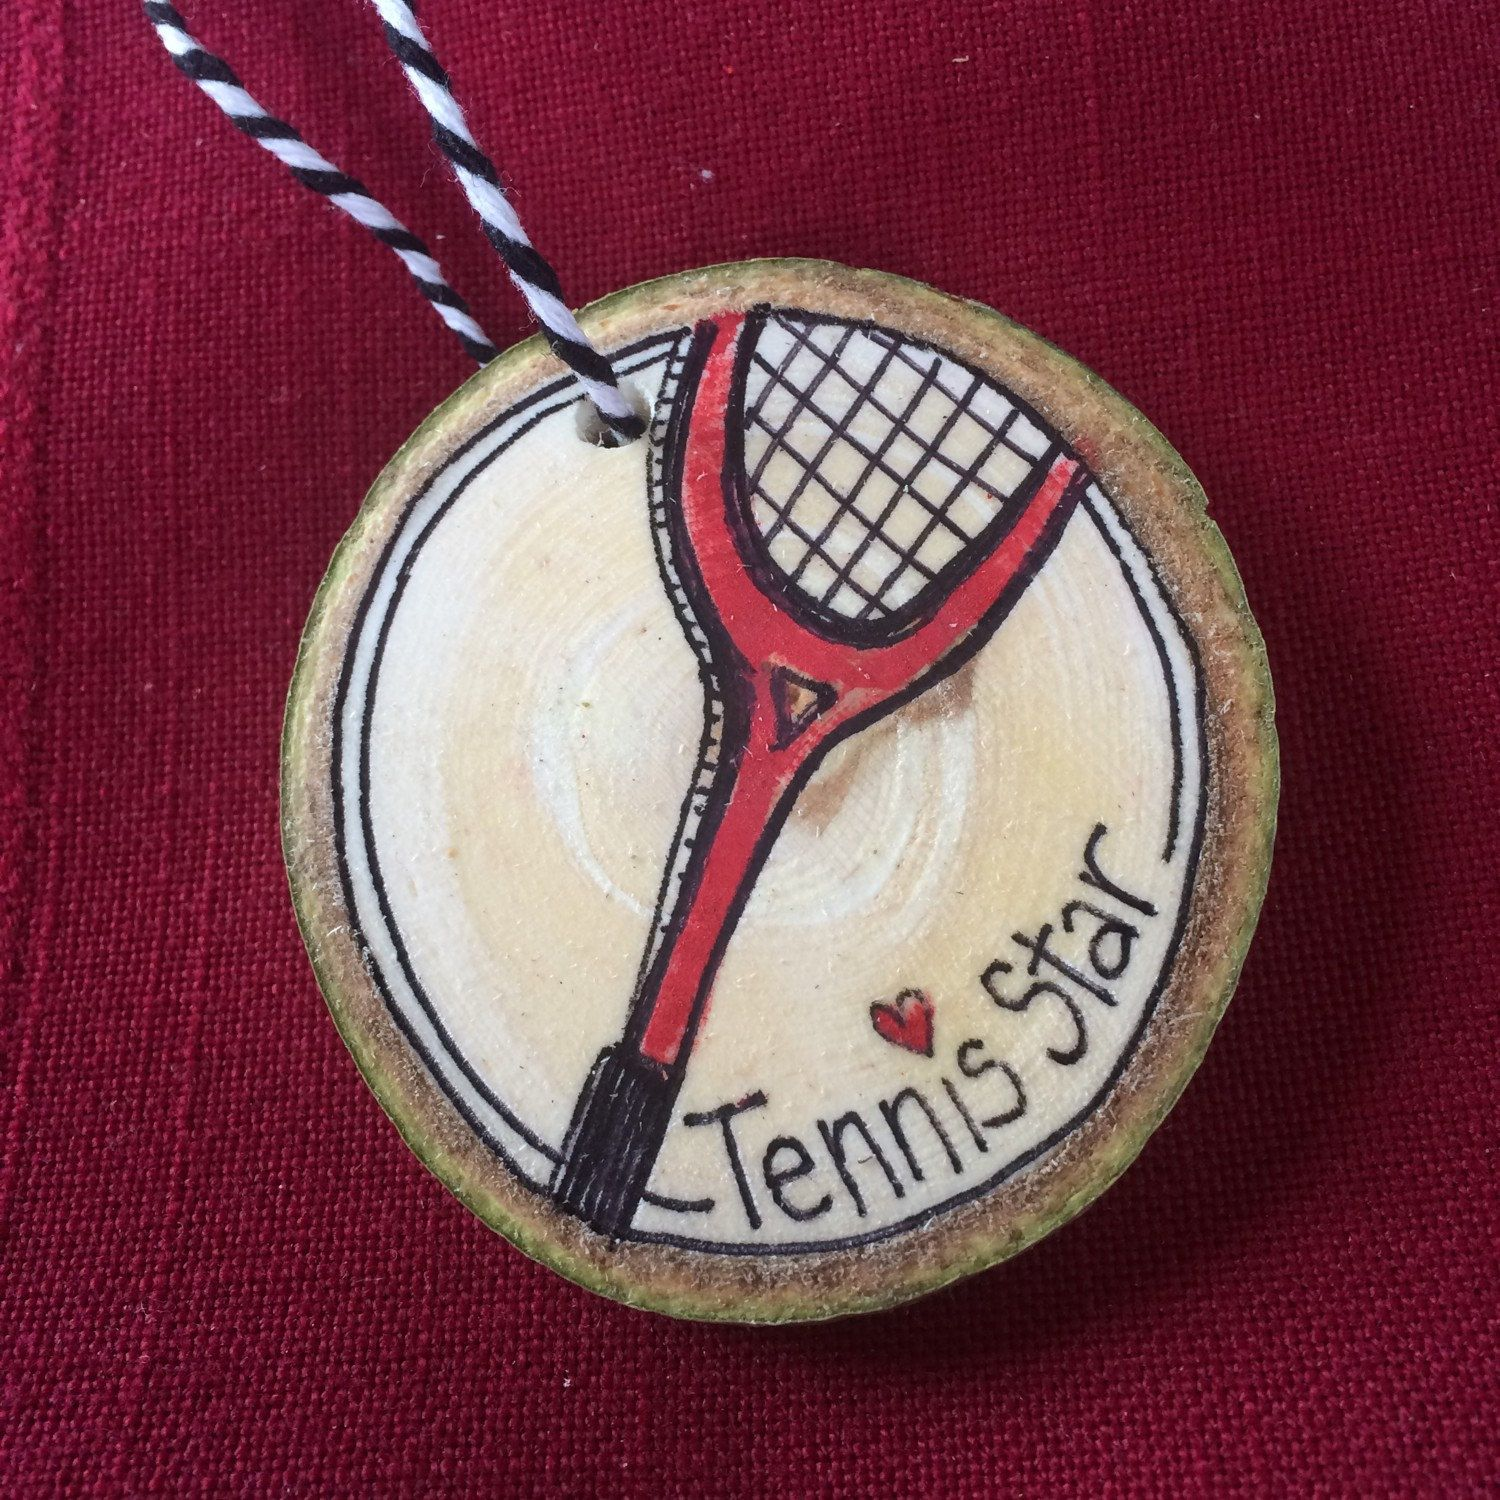 Tennis ornament Wood slice made from Colorado aspen wood. Hand cut and finished by Just a Plain Jane.